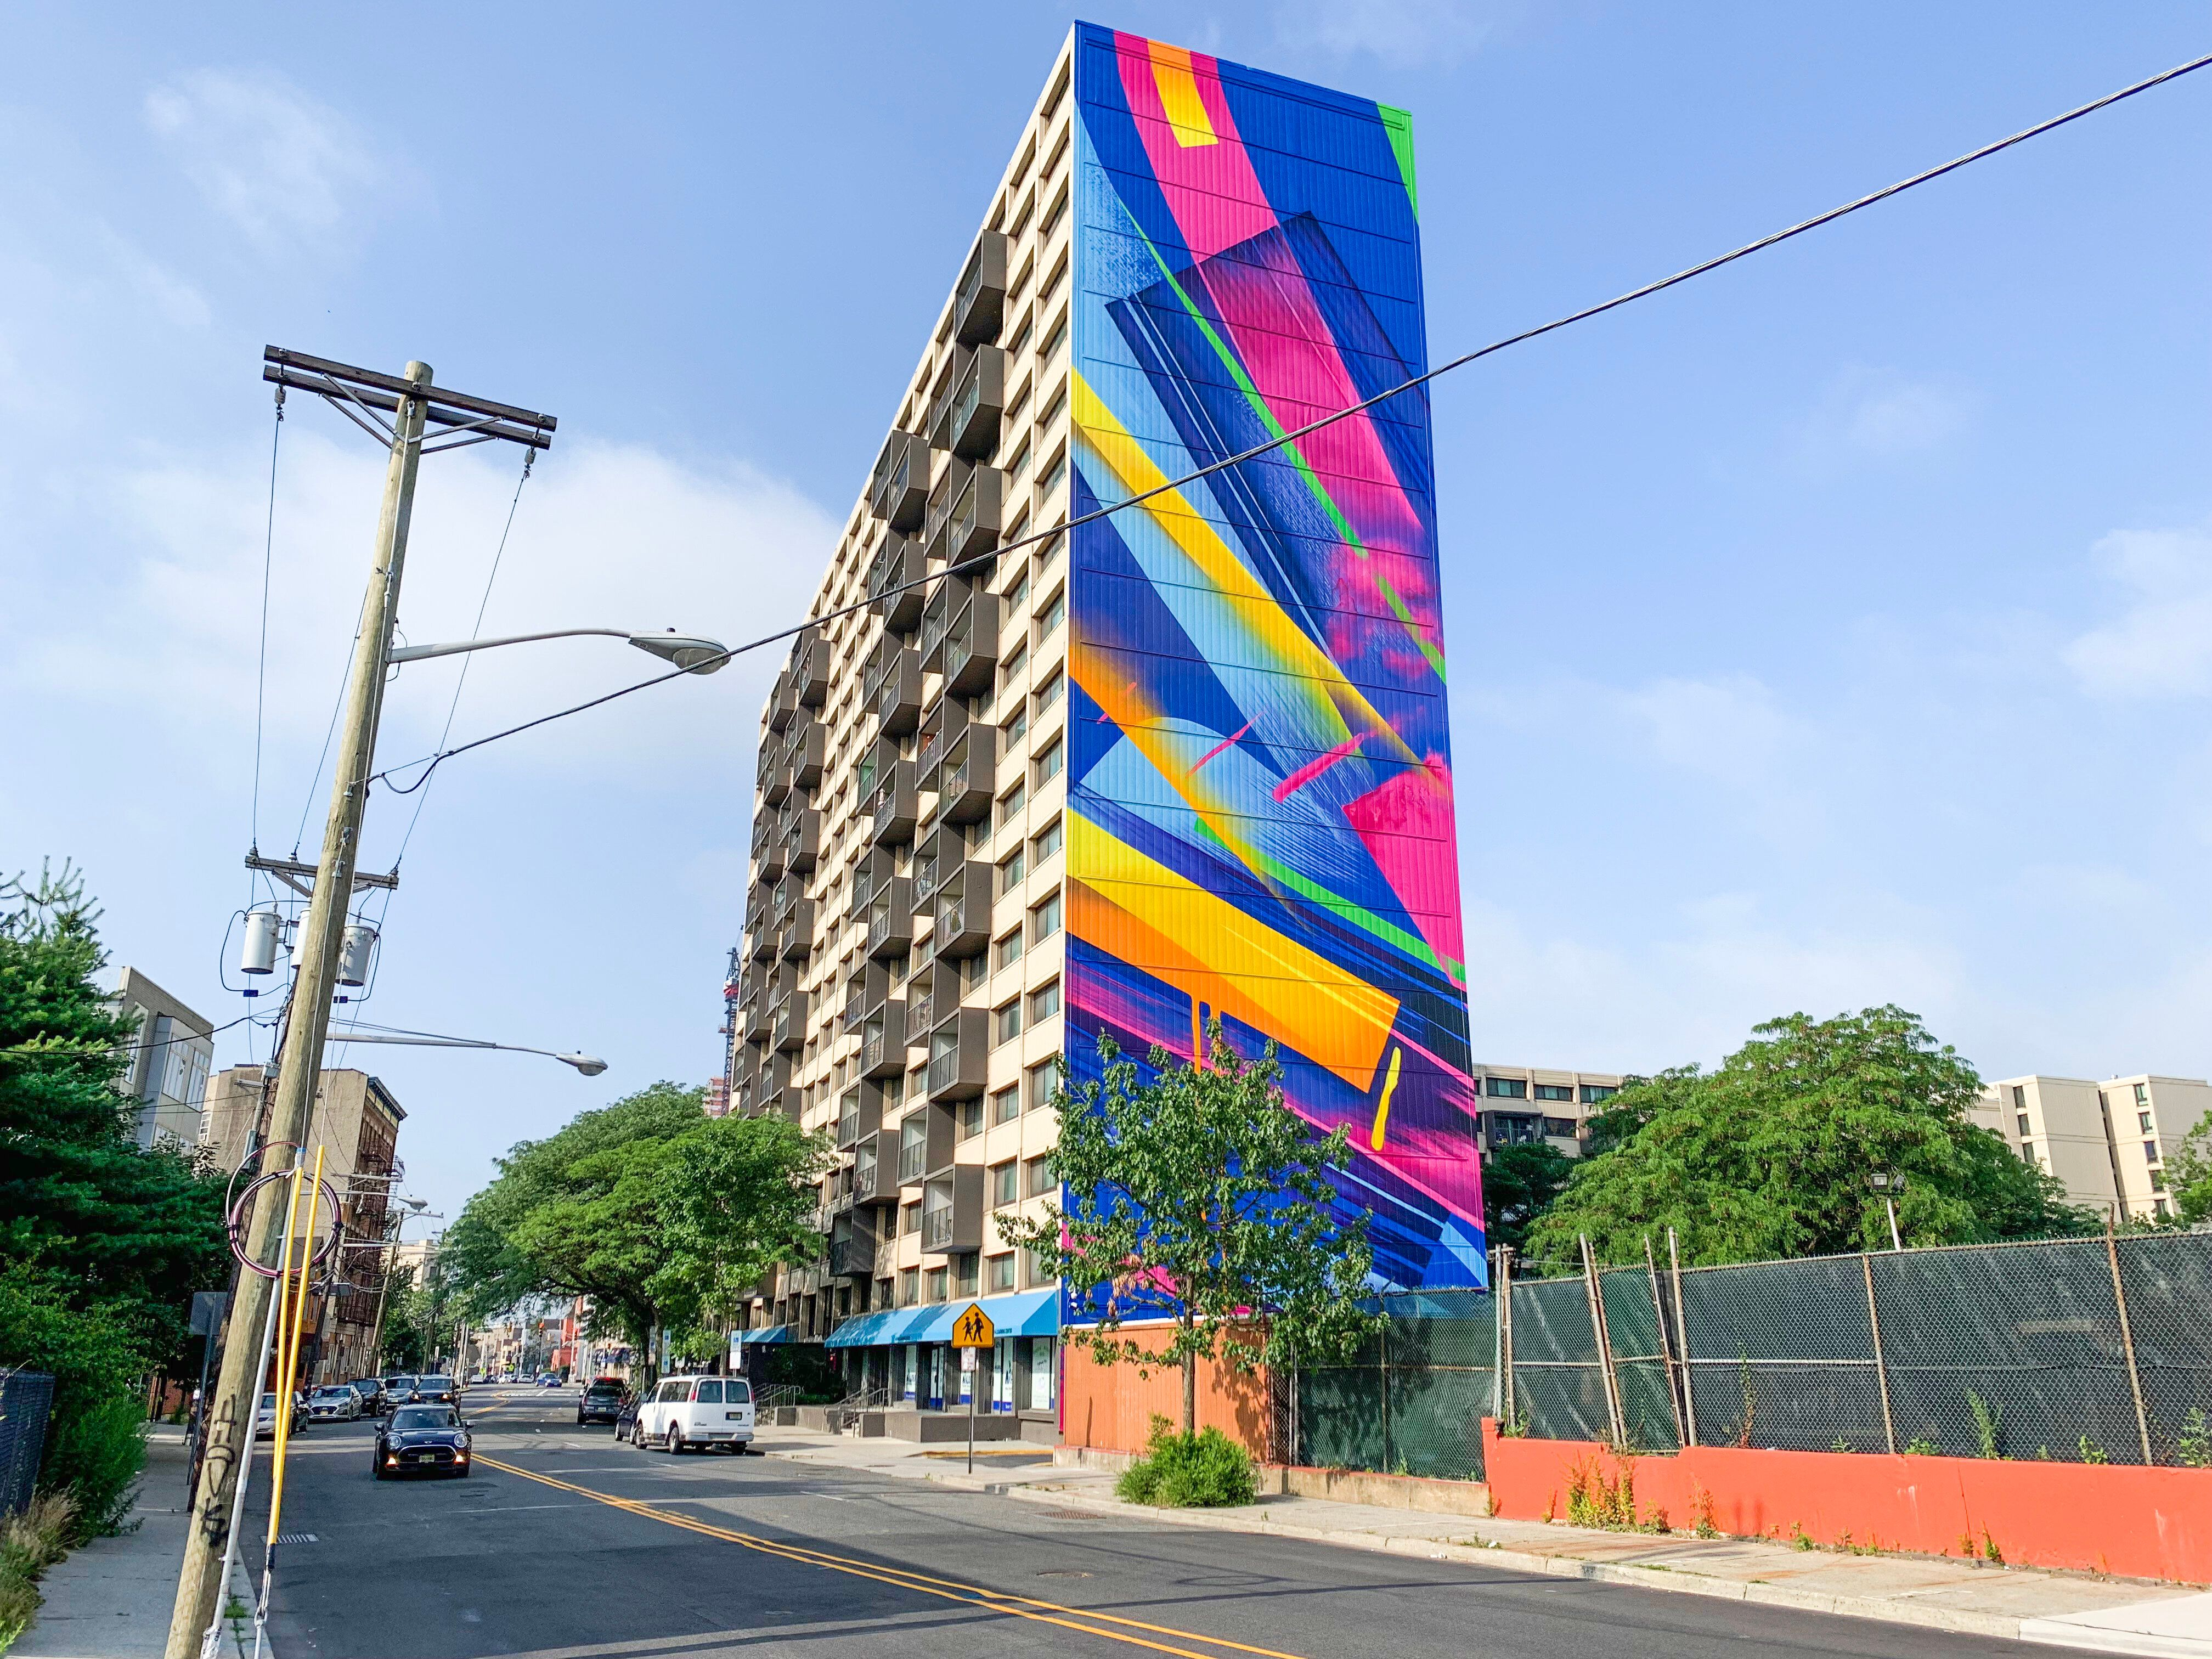 MadC's new mural in Jersey City.